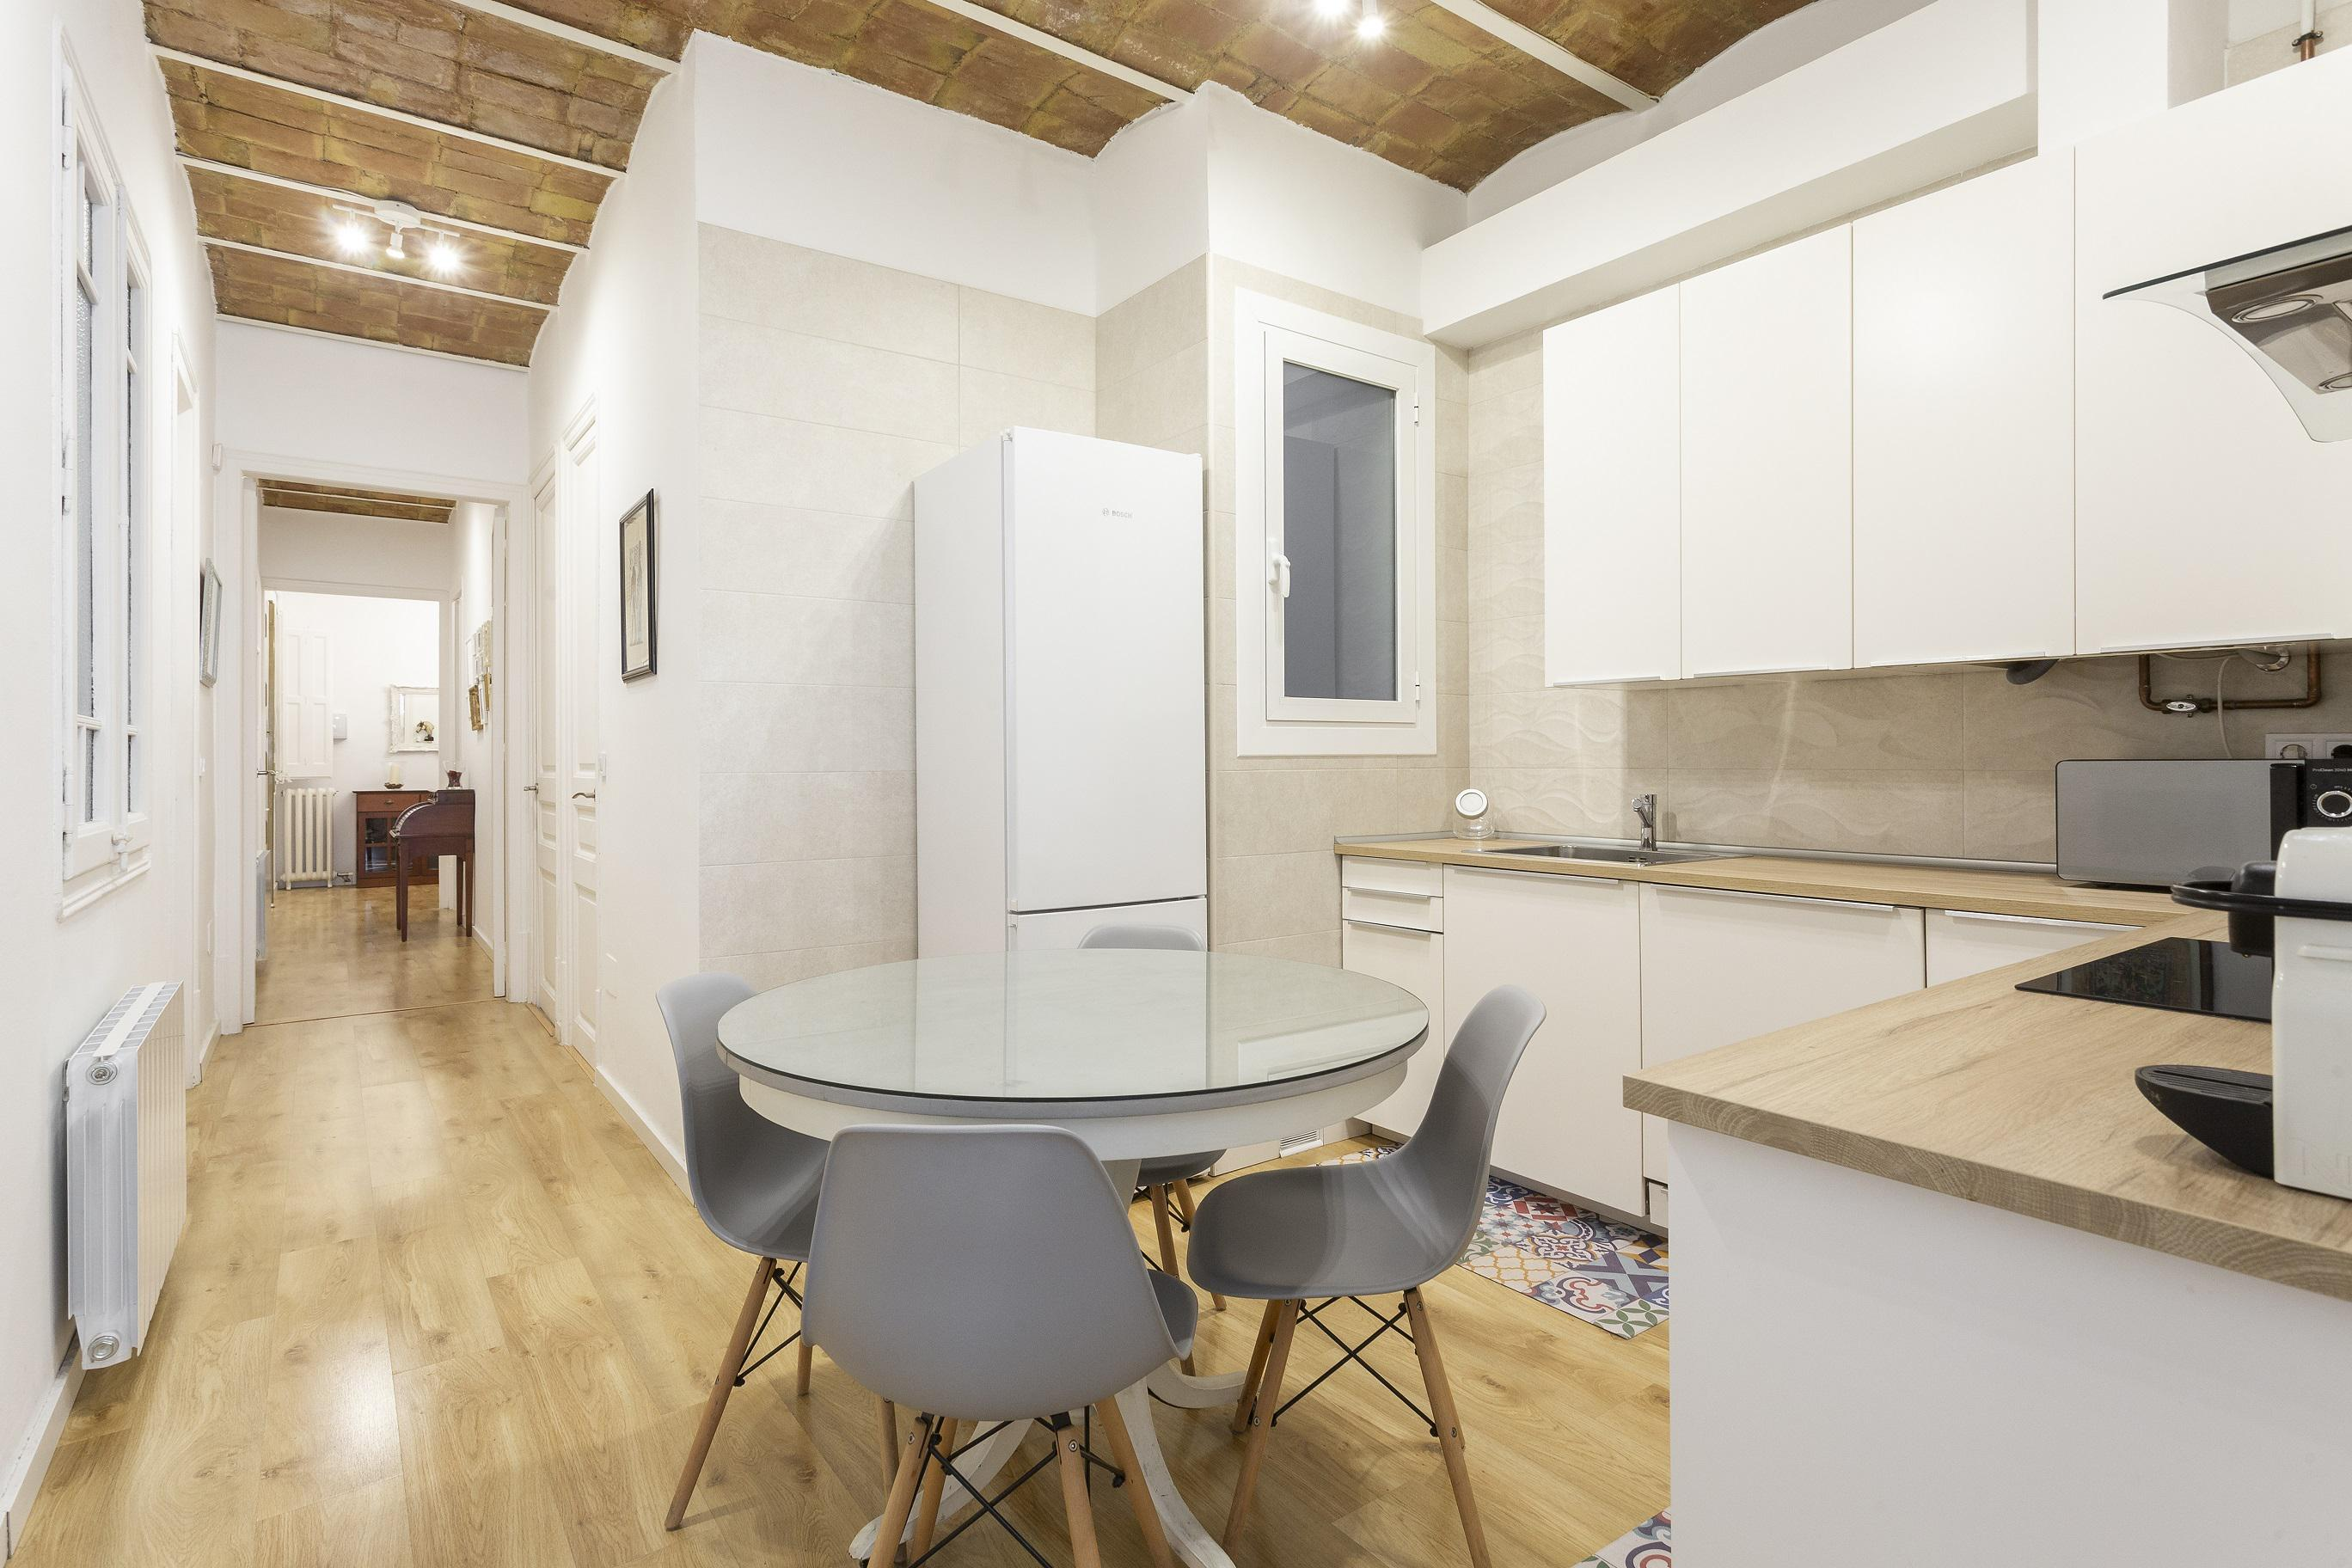 236190 Apartment for sale in Eixample, Old Left Eixample 3